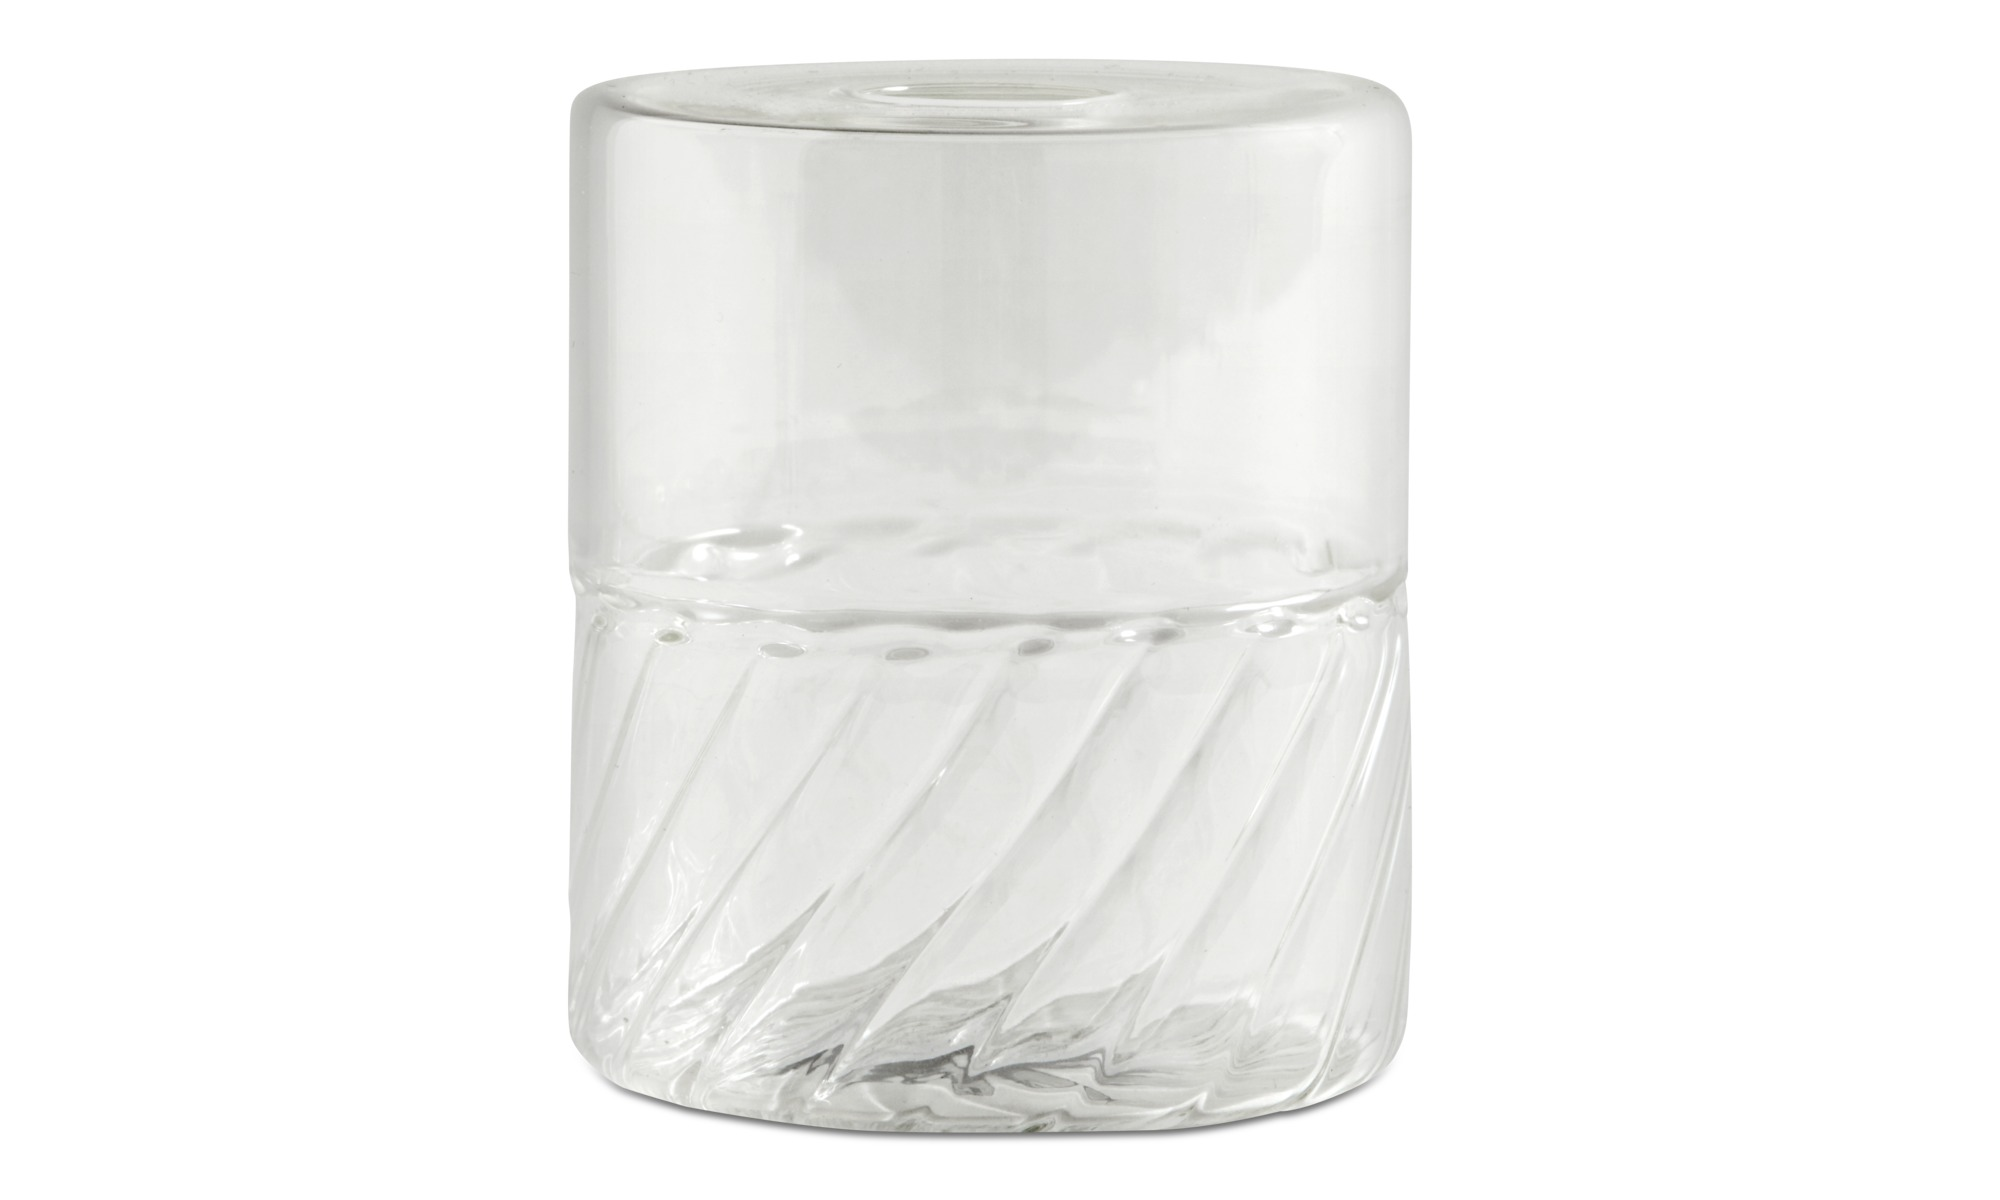 crystal vase glass triple product bud a clear resale